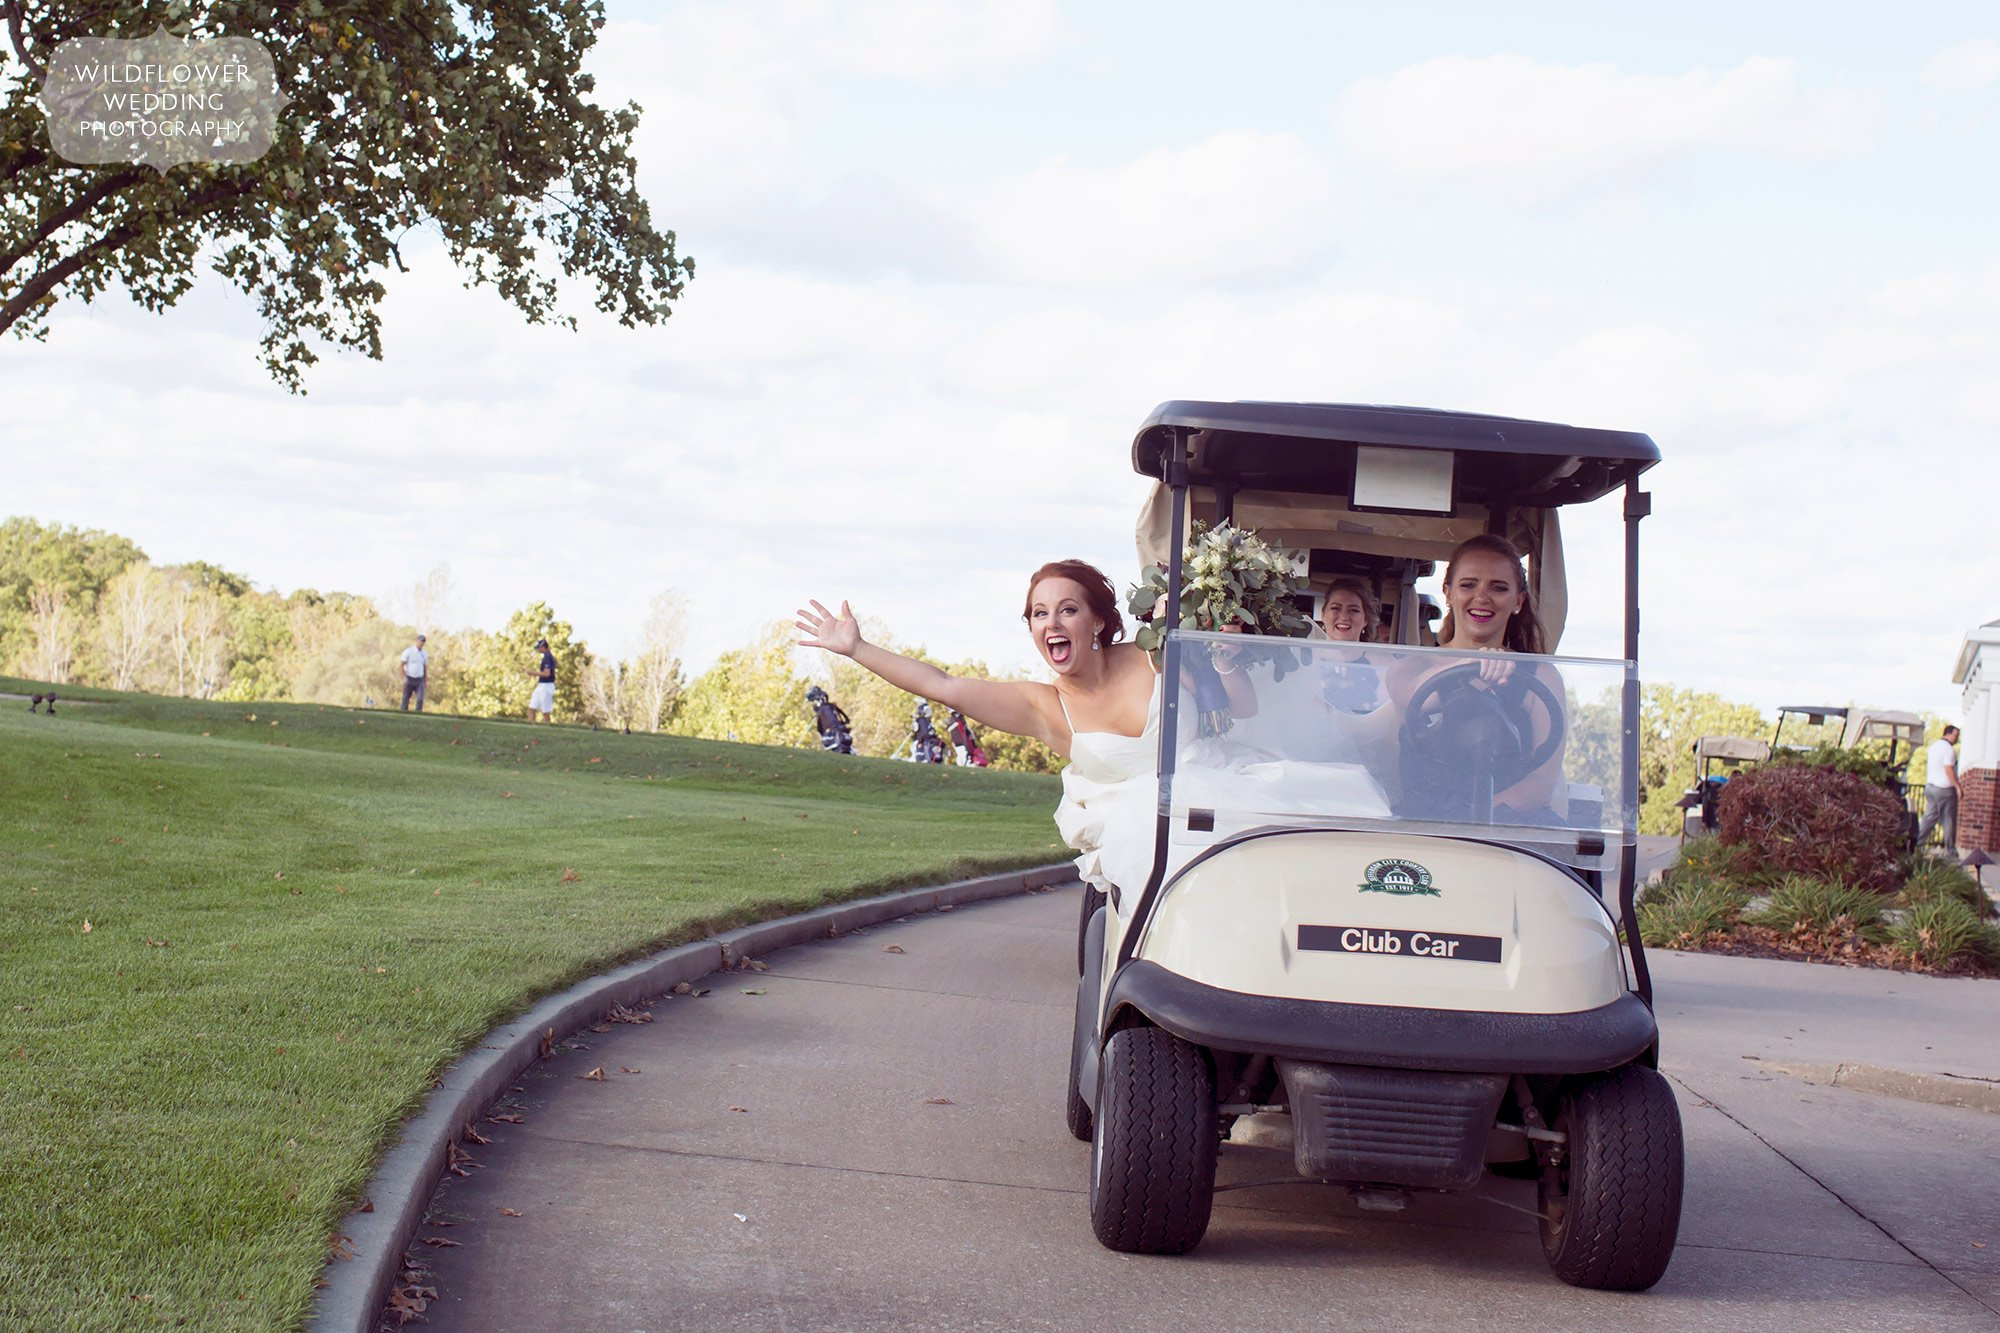 The bride smiling while riding in a golf cart at the Jefferson City Country Club.